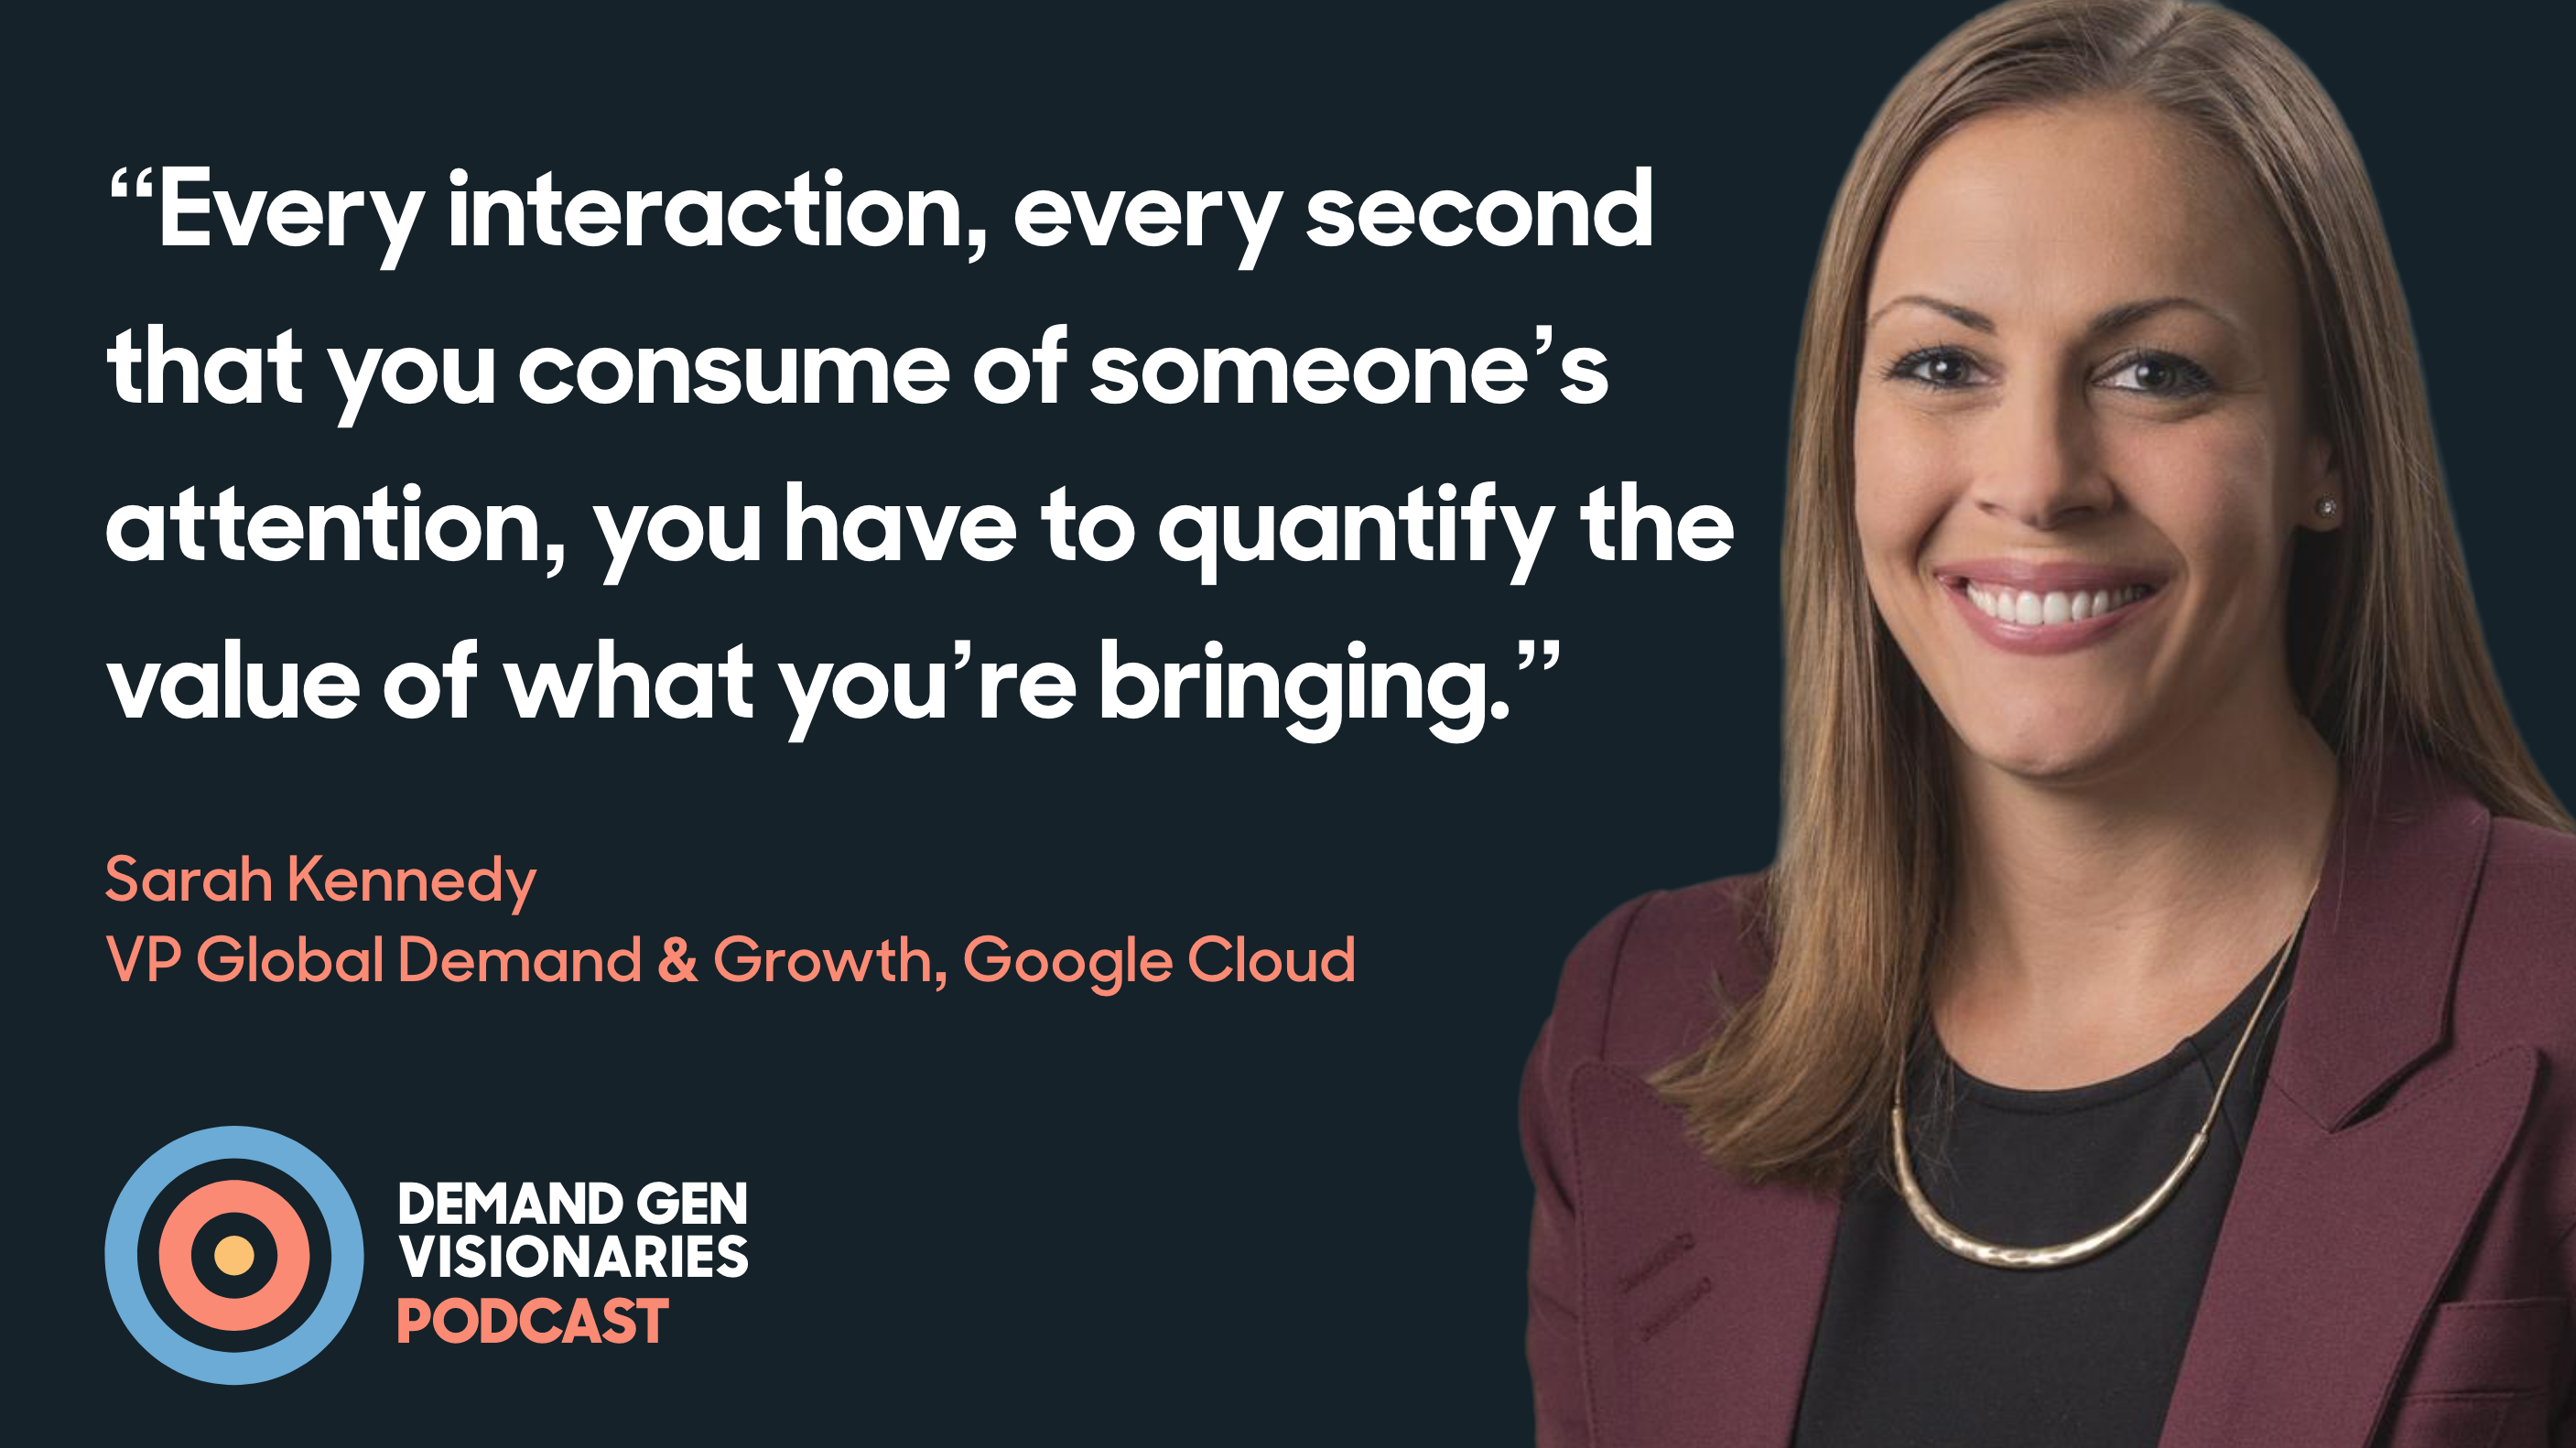 In this episode of the Demand Gen Visionaries podcast, we're joined by Sarah Kennedy, VP of Global Demand & Growth at Google Cloud